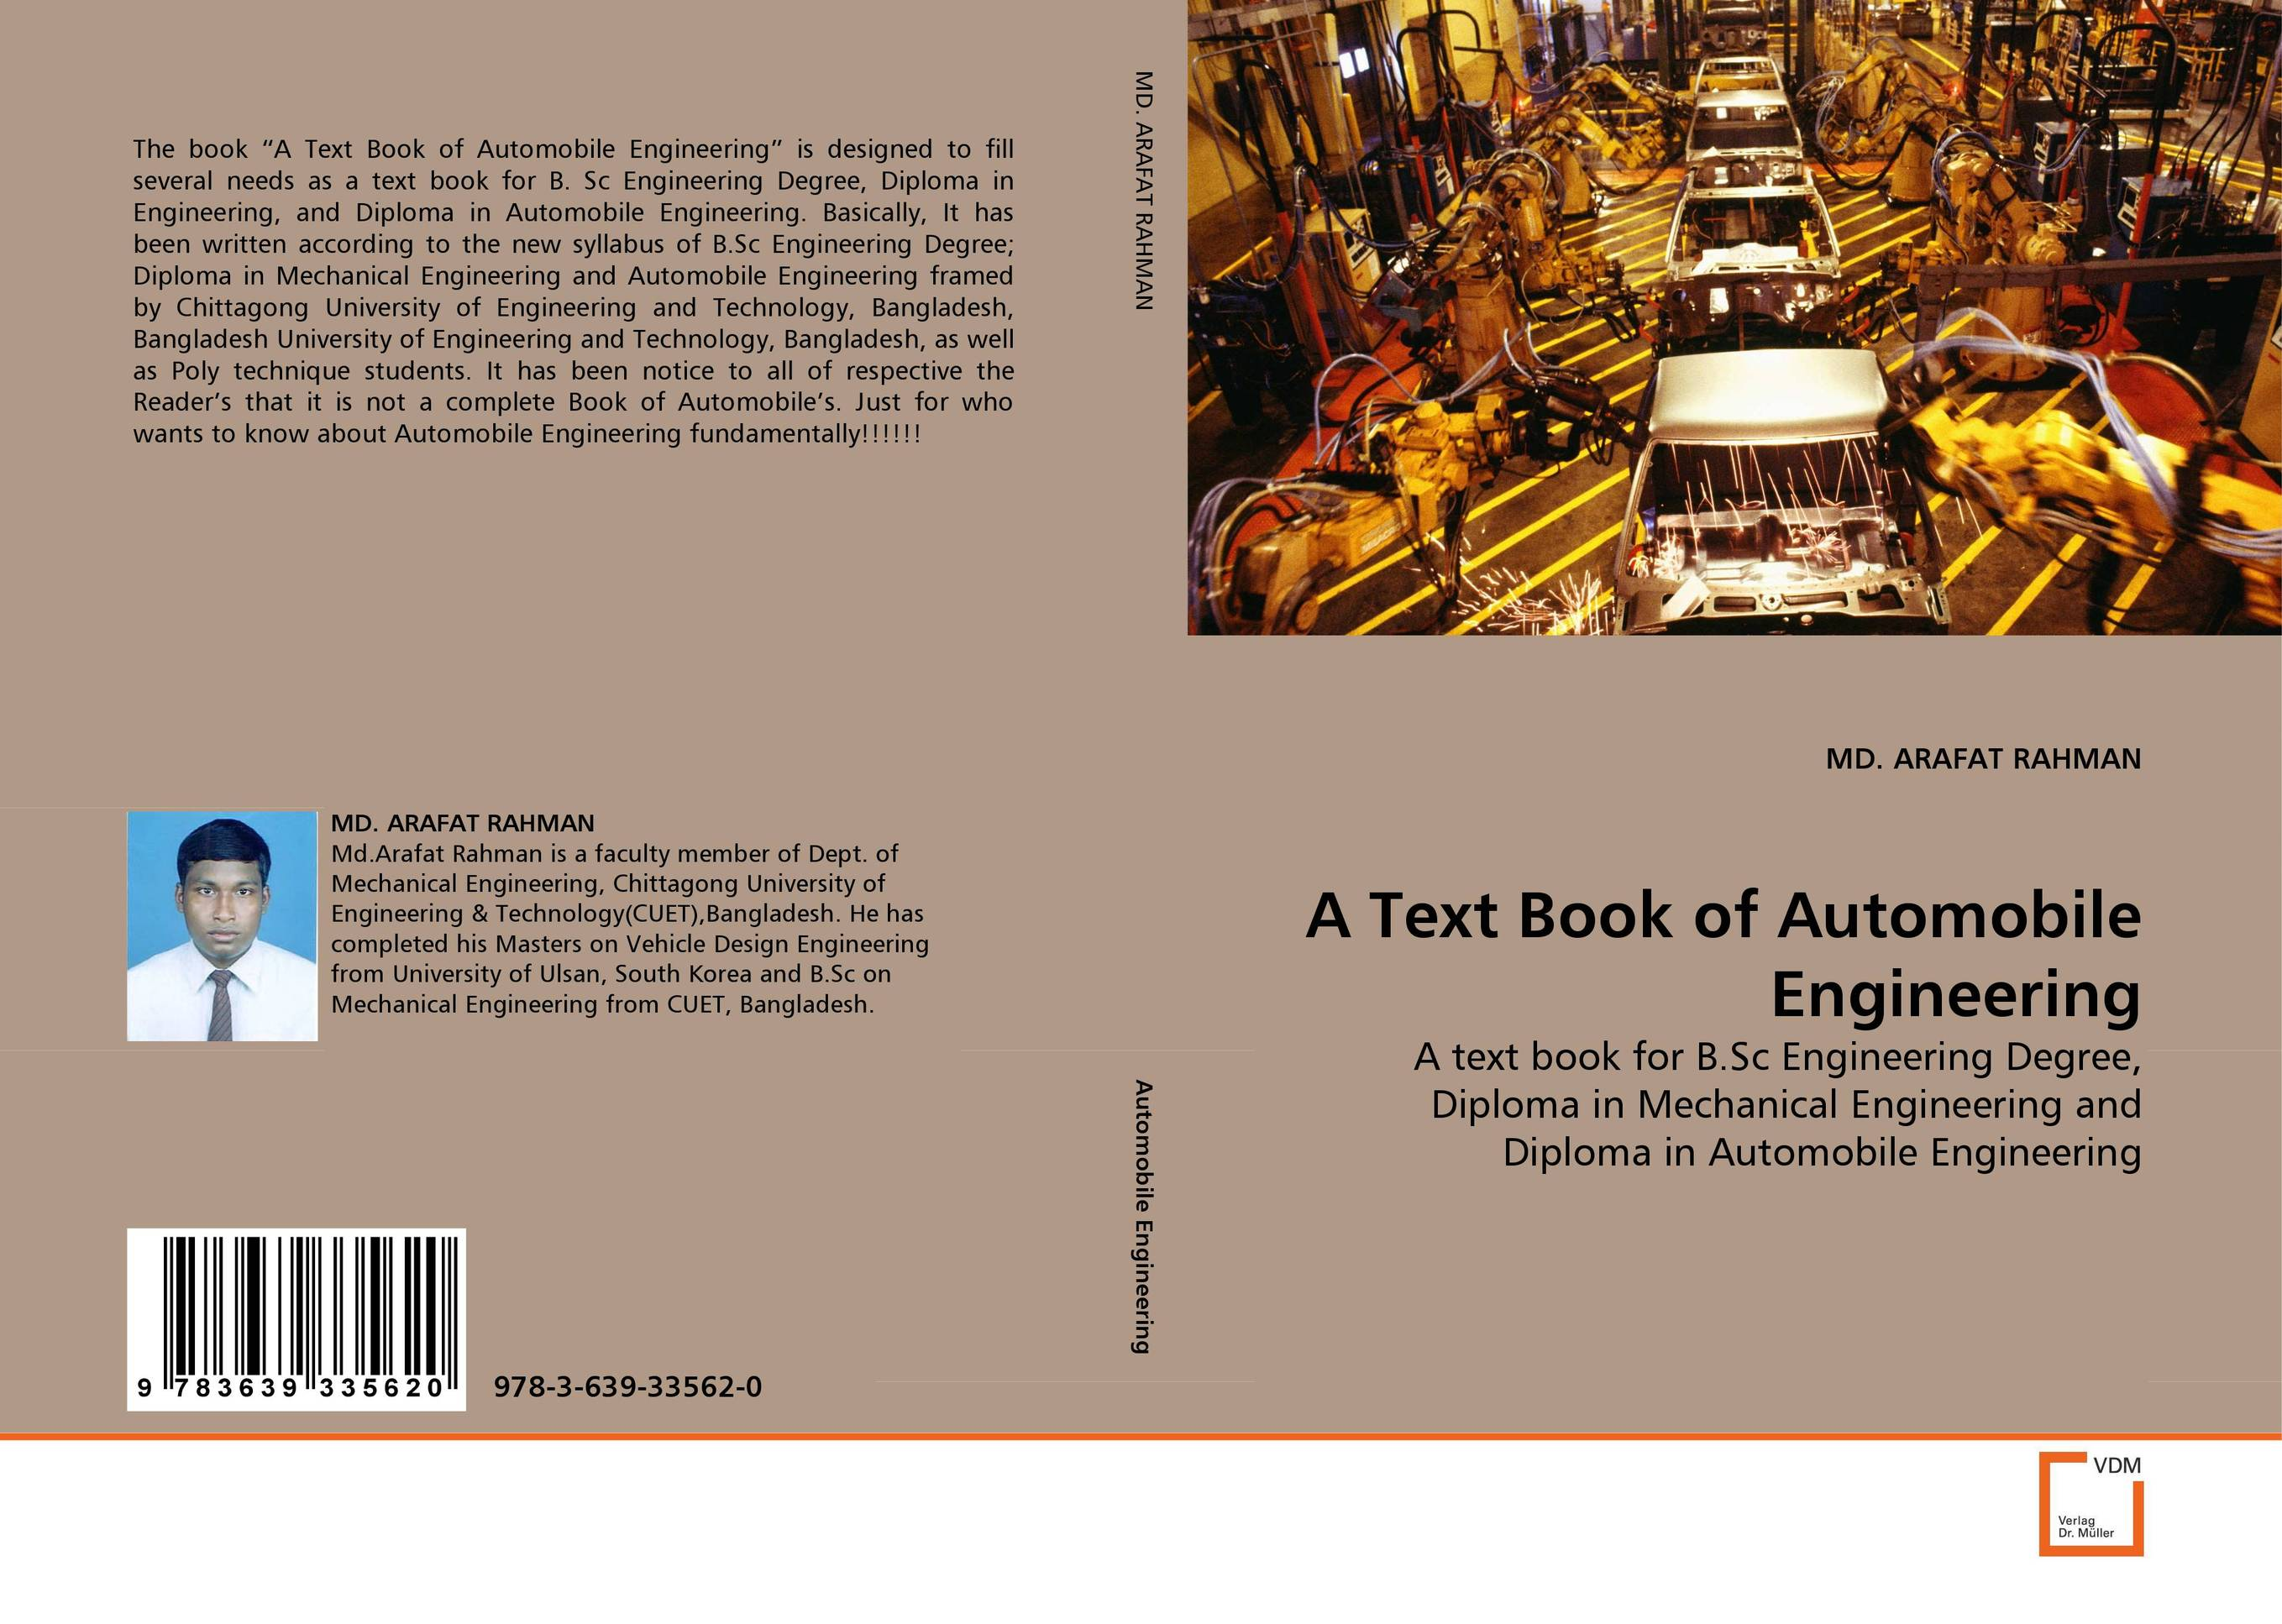 A Text Book of Automobile Engineering цветная бумага henan university of technology press